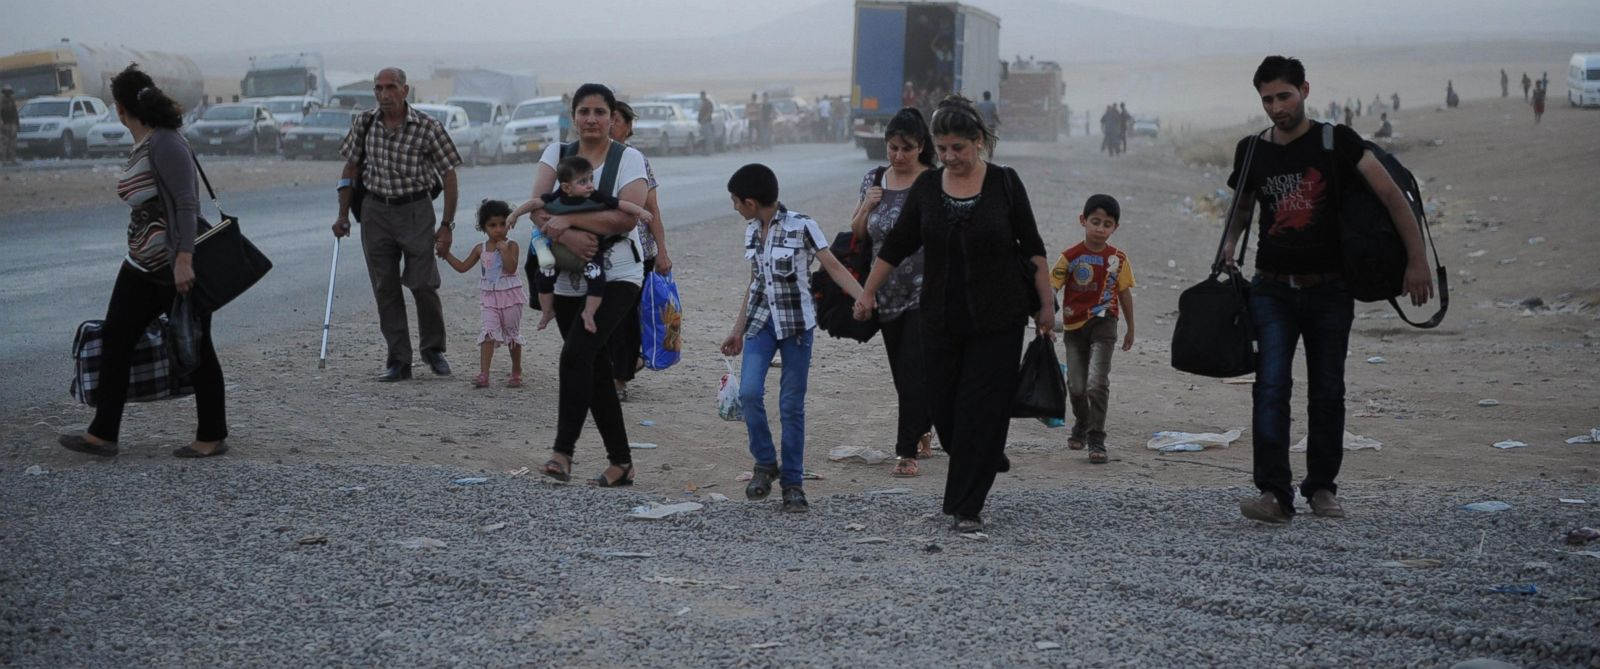 PHOTO: Thousands of Yazidi and Christian people flee Hamdaniyah town for Erbil after the latest wave of ISIL advances has seen a number of towns near Iraqs second largest city Mosul fall to the militants on Aug. 6, 2014.